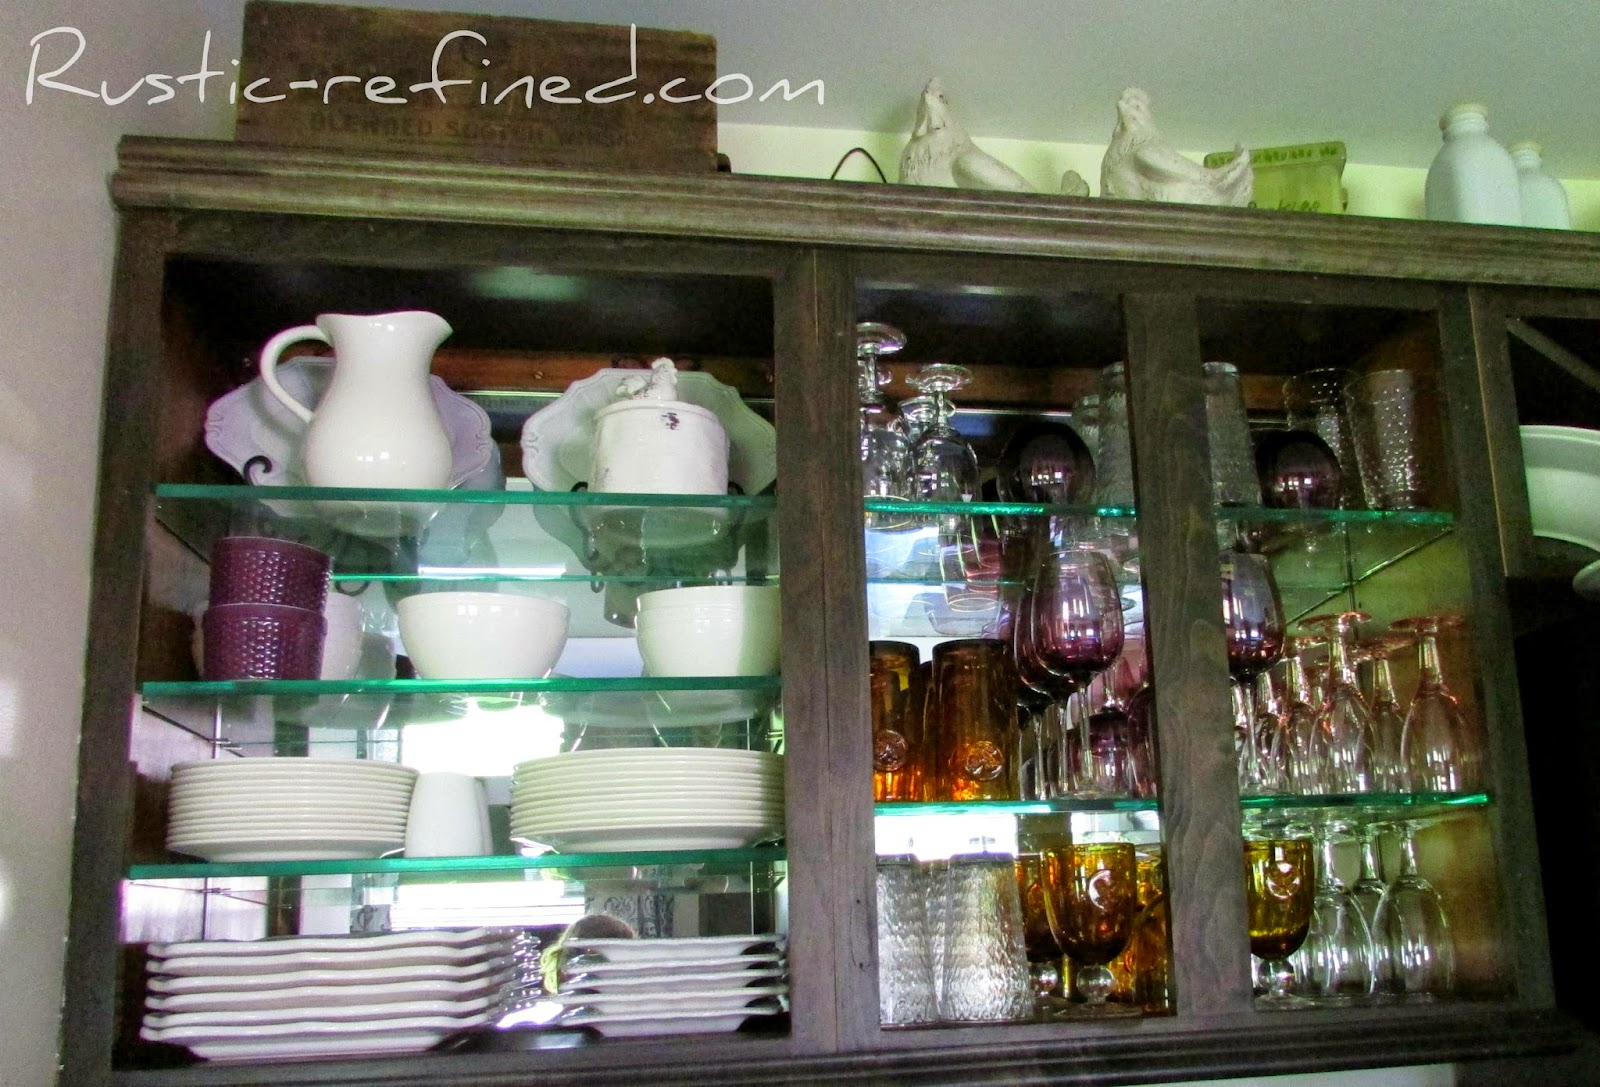 Kitchen Cabinet using Mirror & Glass @ Rustic-refined.com